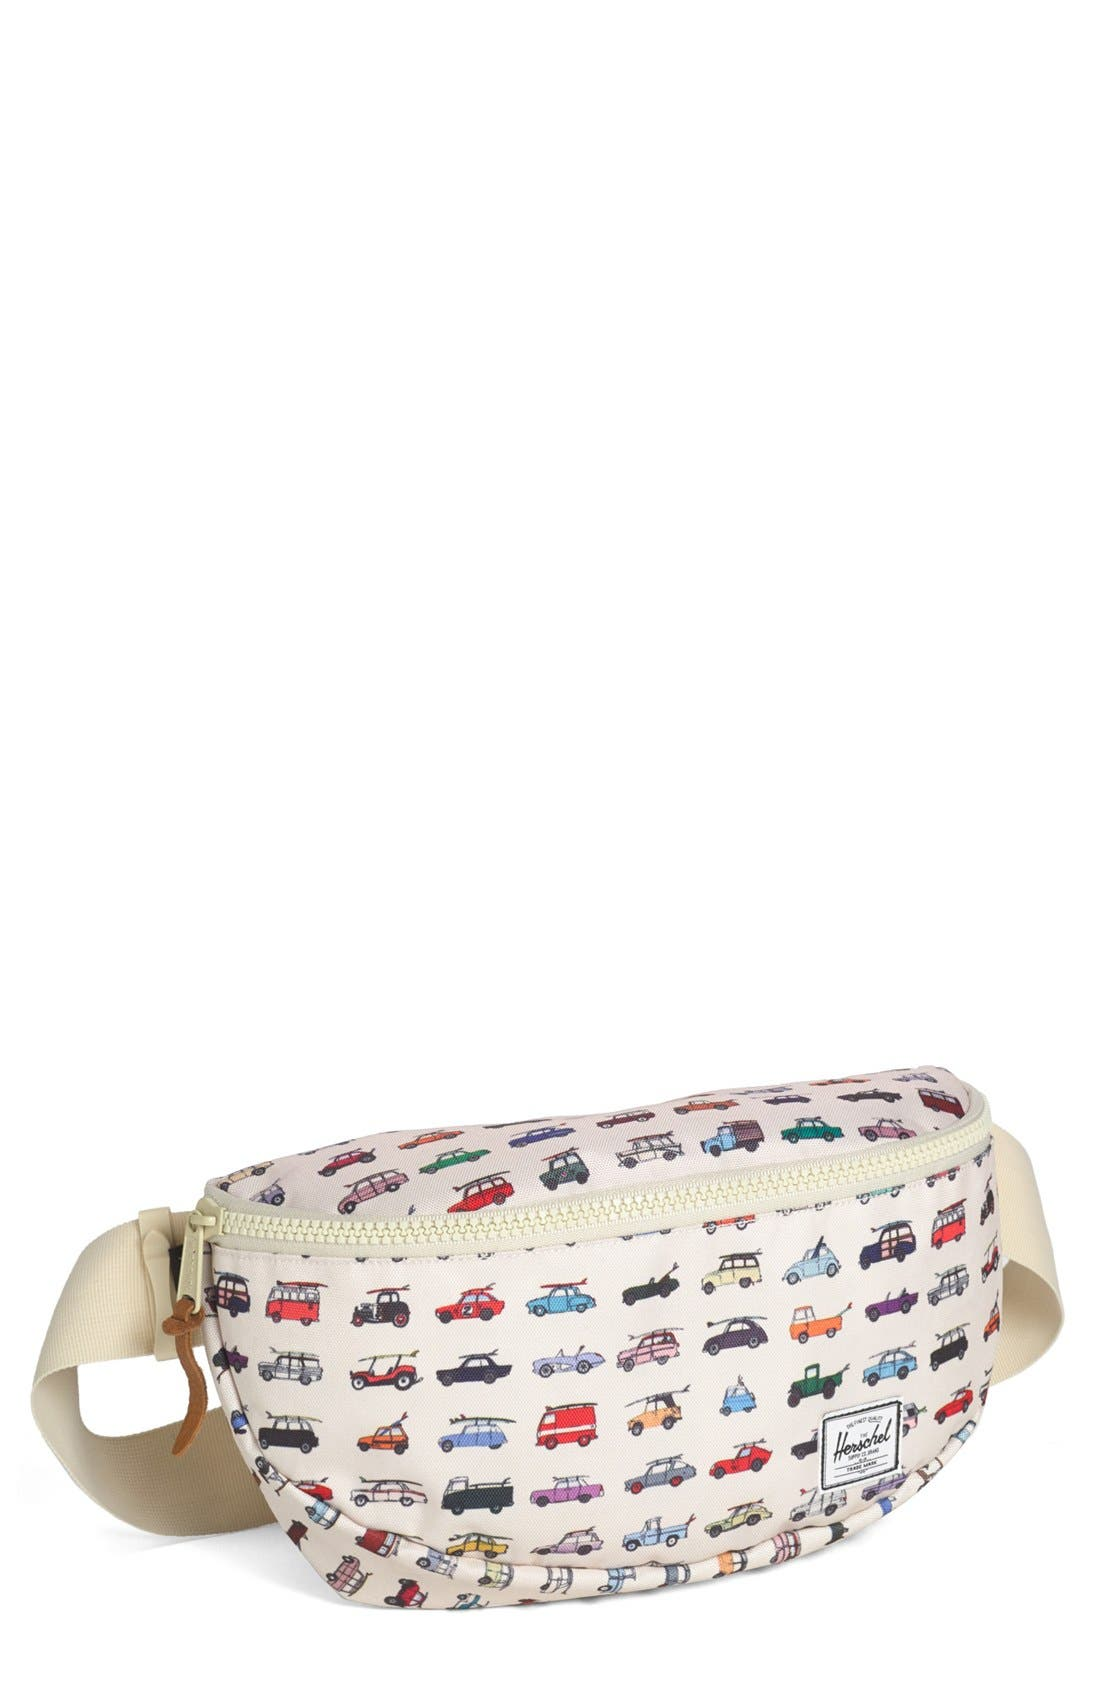 Main Image - Herschel Supply Co. 'Sixteen - Rad Cars with Rad Surfboards Collection' Hip Pack